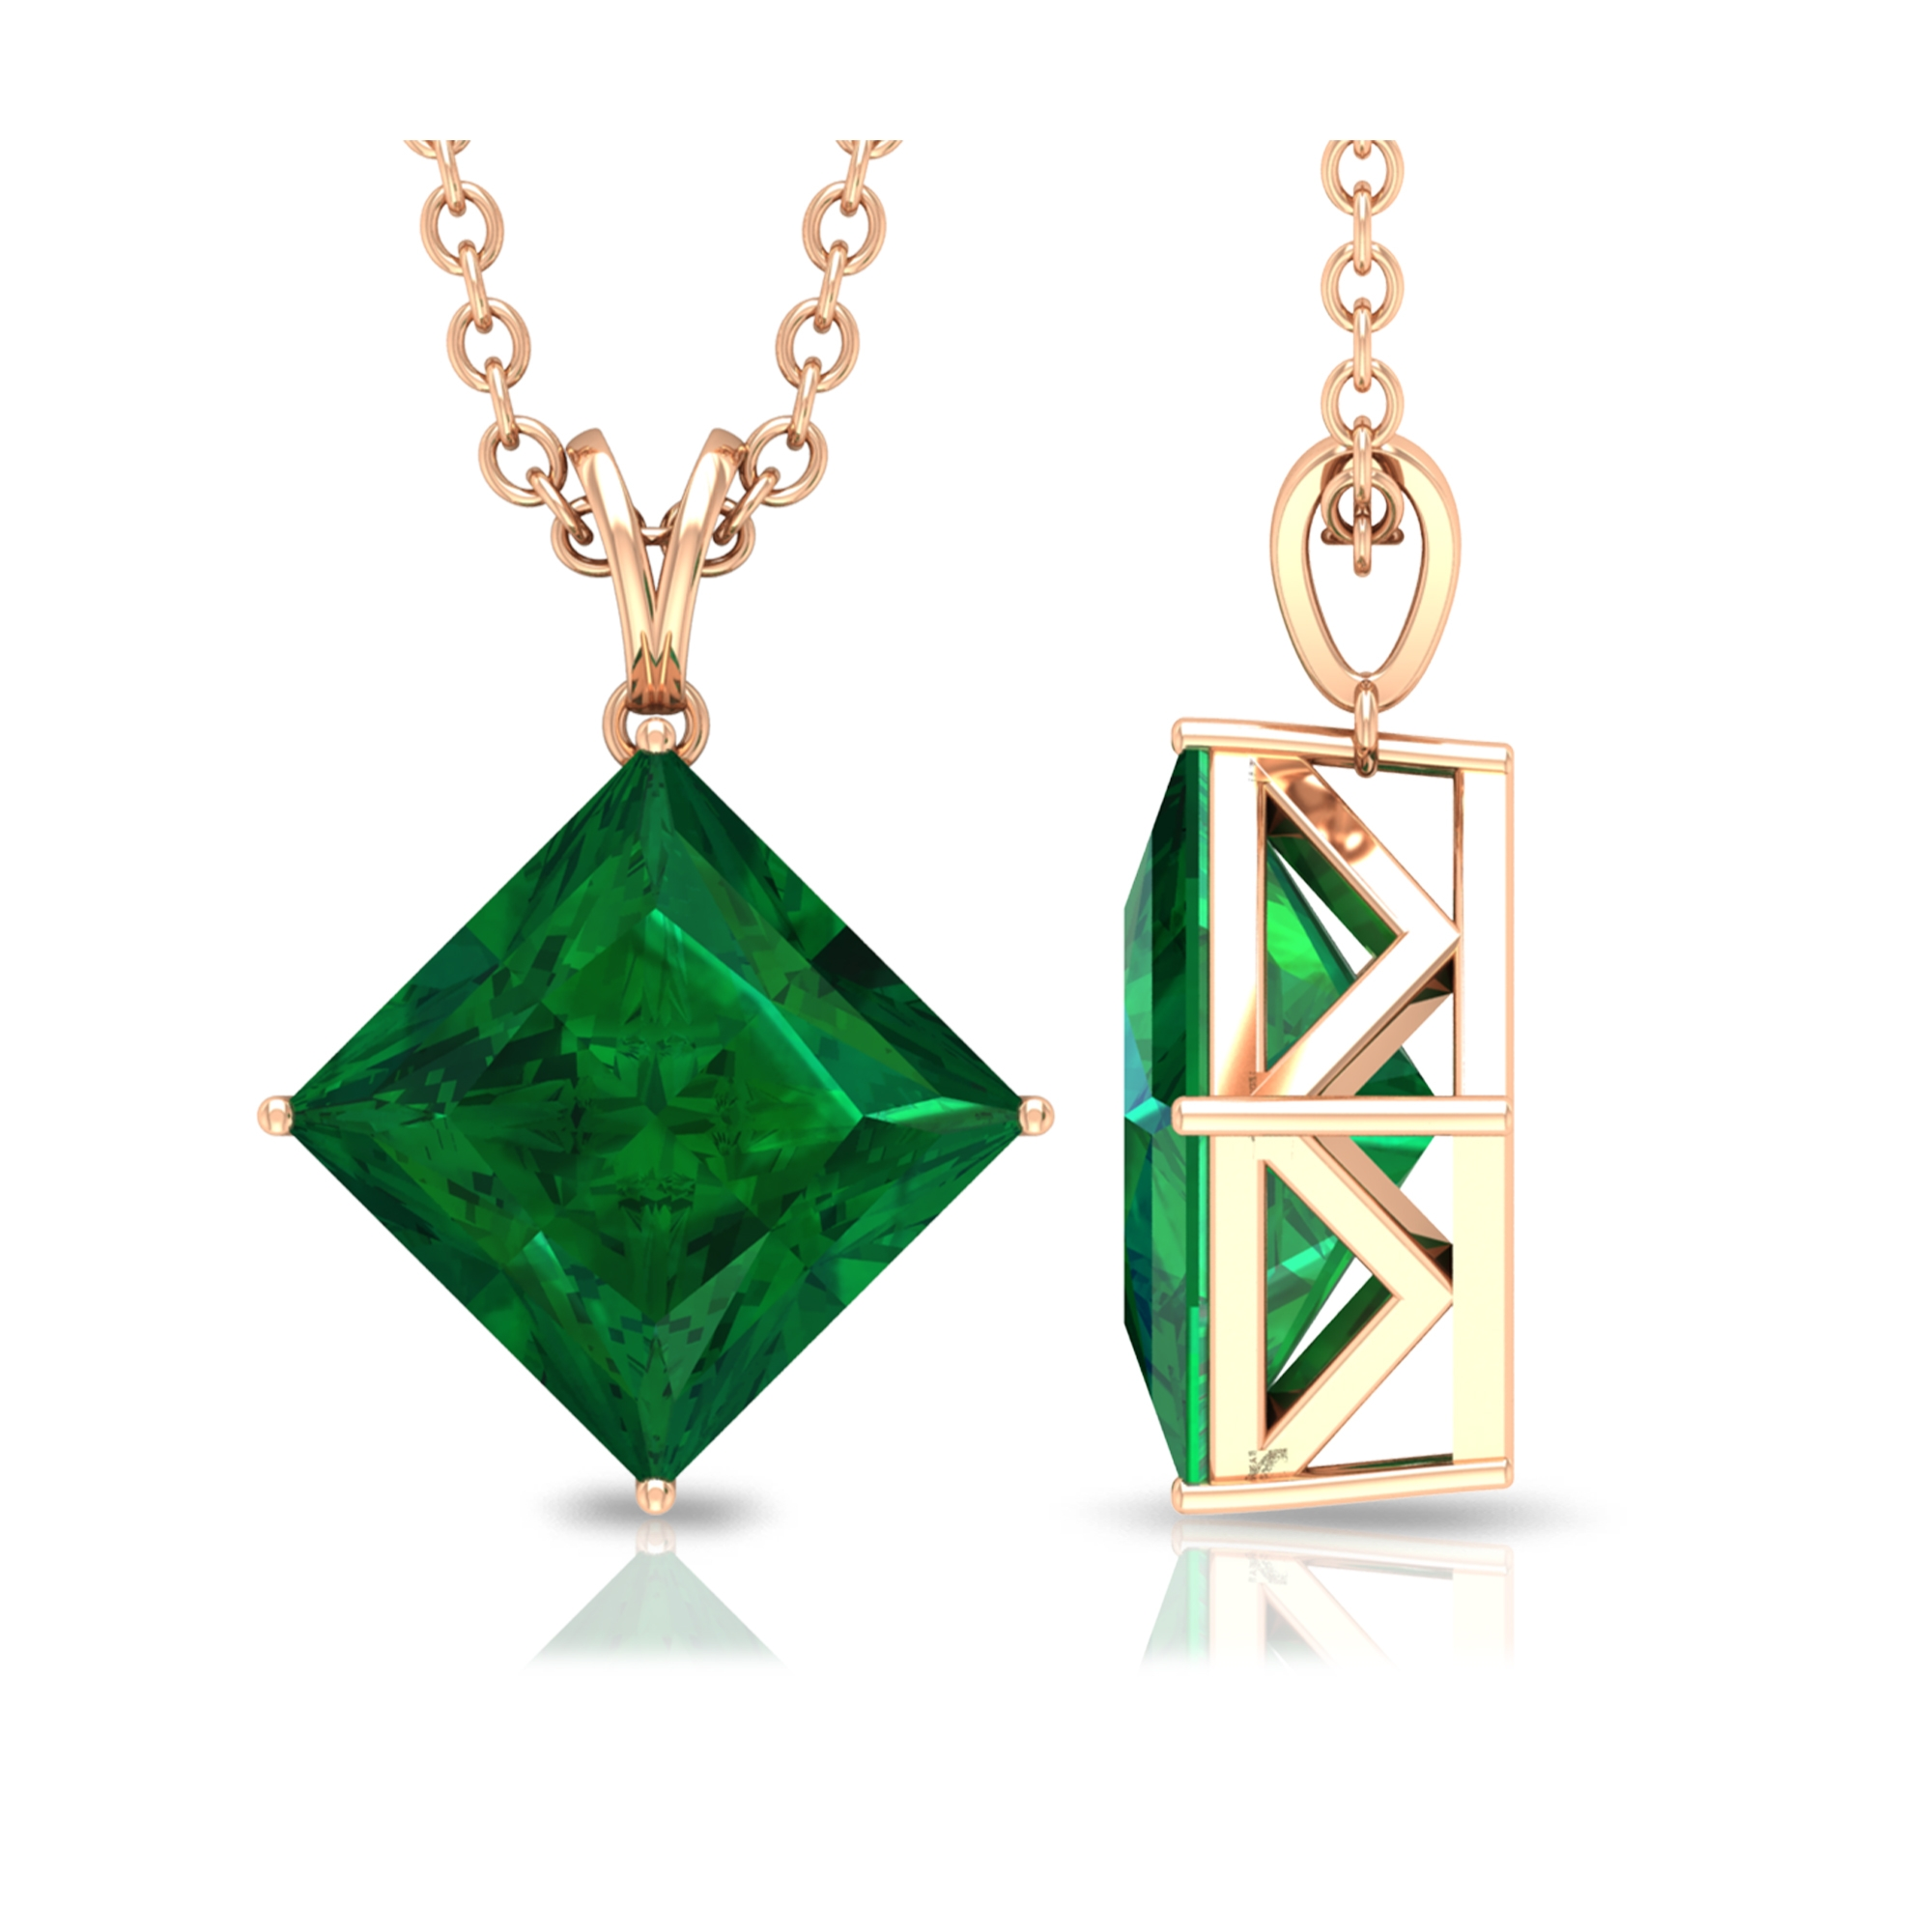 4 Prong Diagonal Solitaire Pendant with 7 MM Princess Cut Emerald with Rabbit Ear Bail